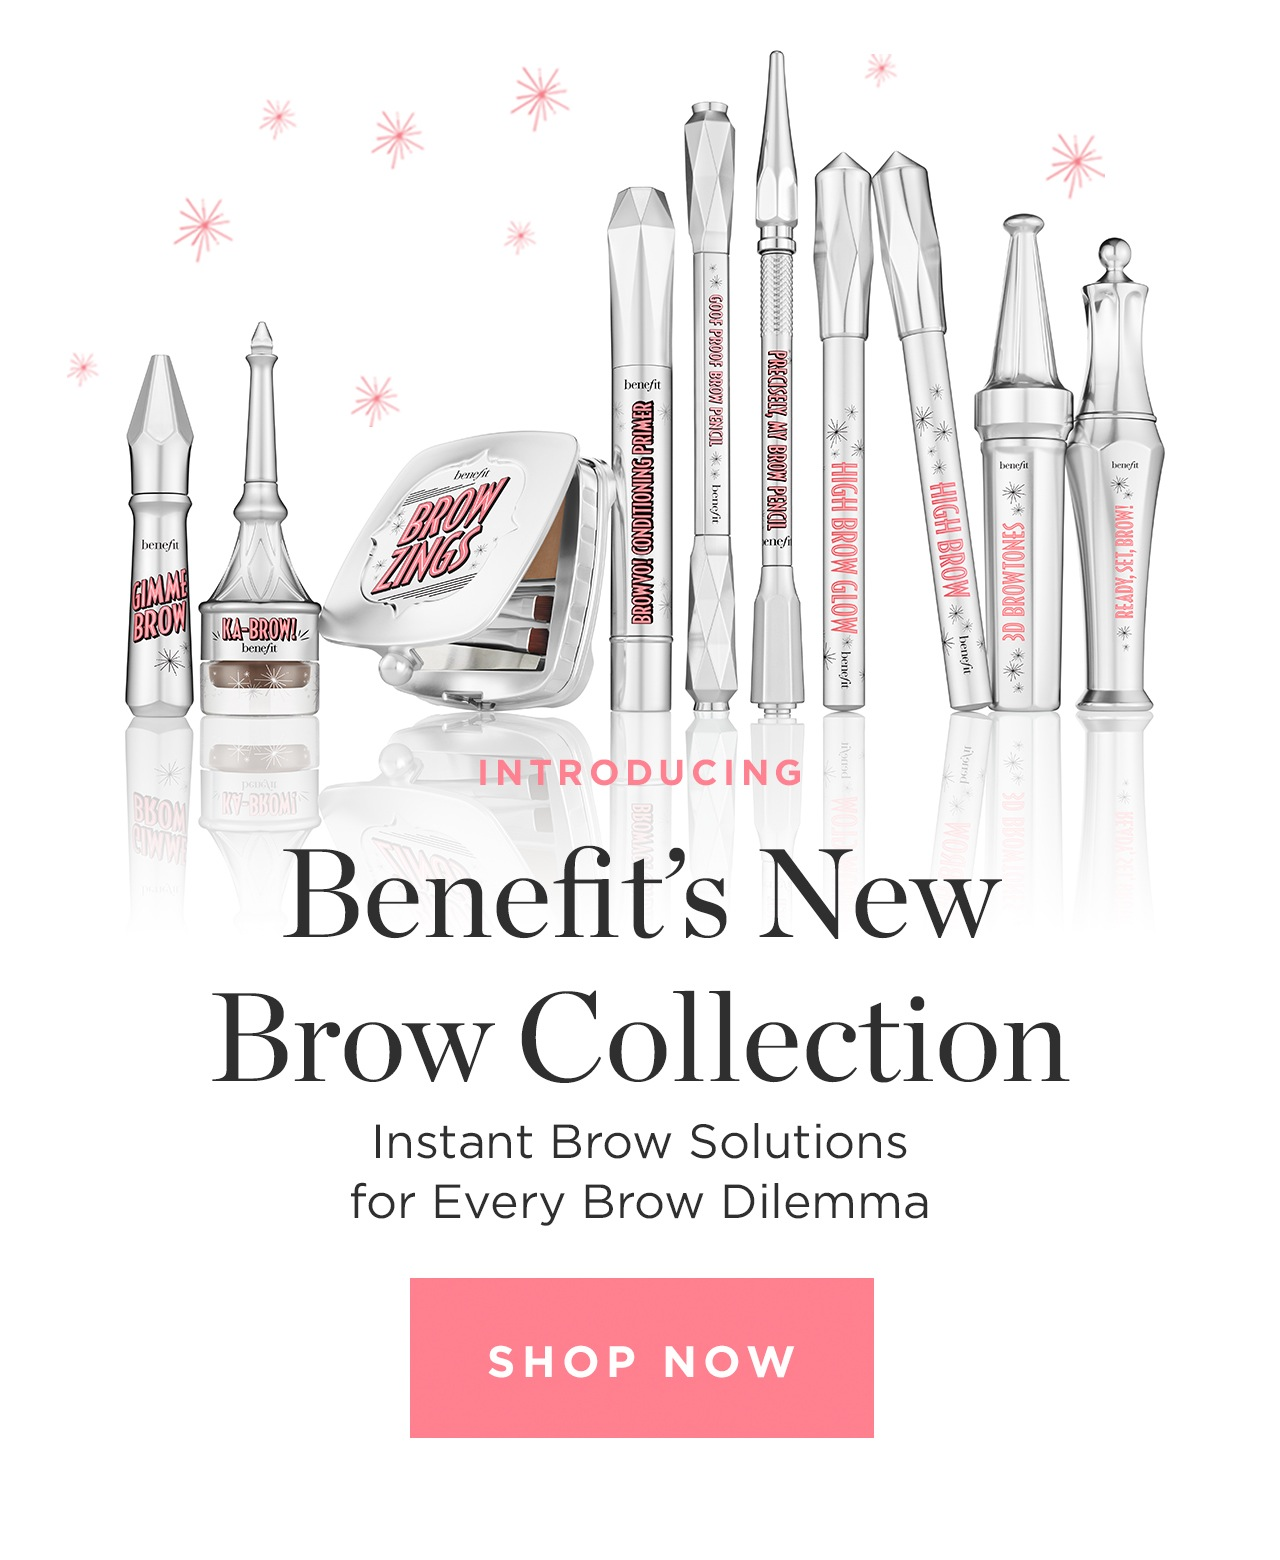 Introducing Benefit's New Brow Collection